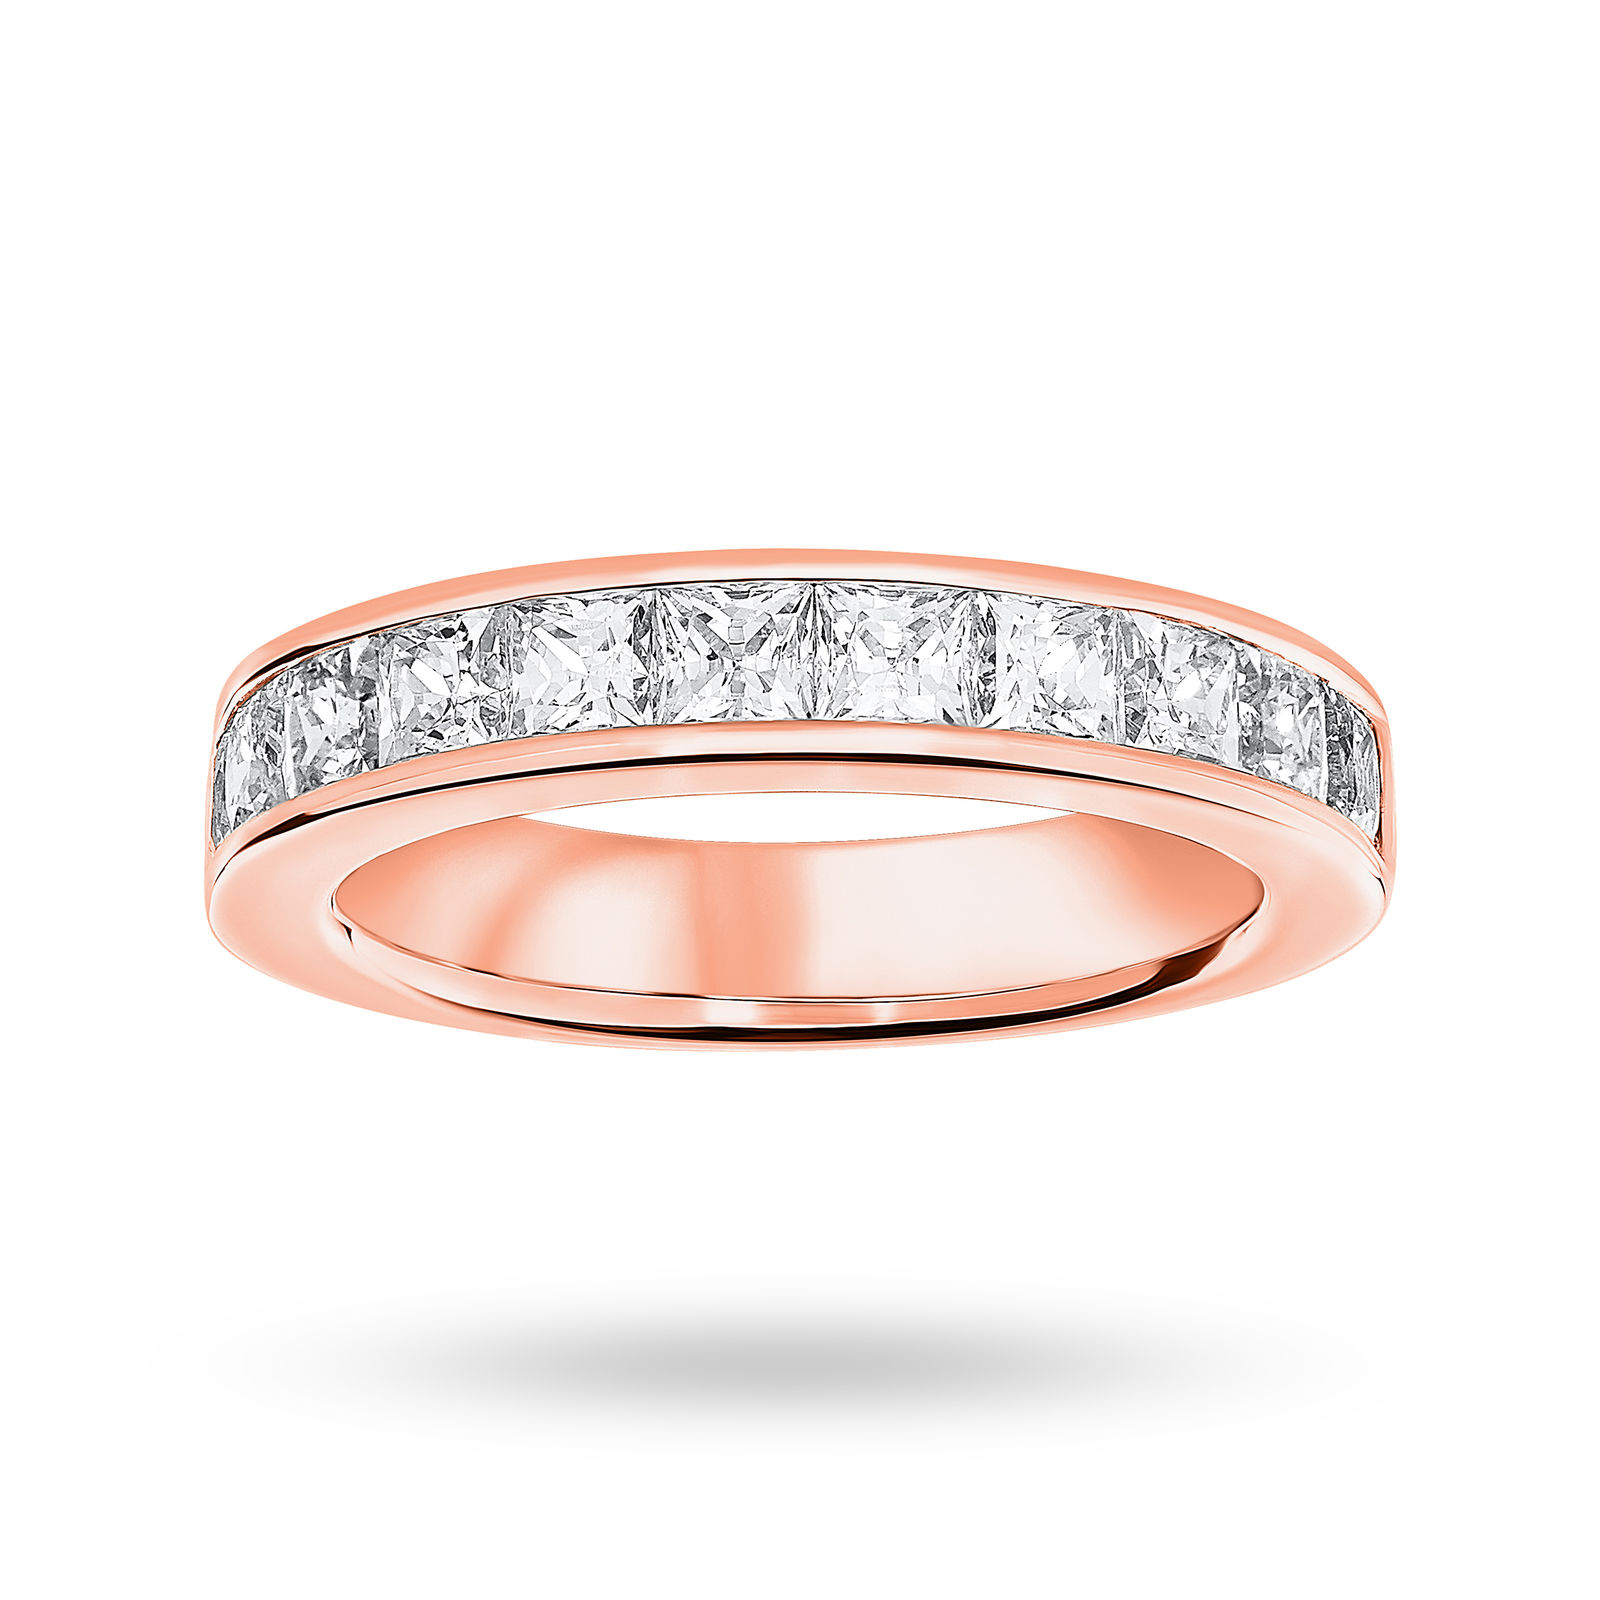 18 Carat Rose Gold 2.00 Carat Princess Cut Half Eternity Ring